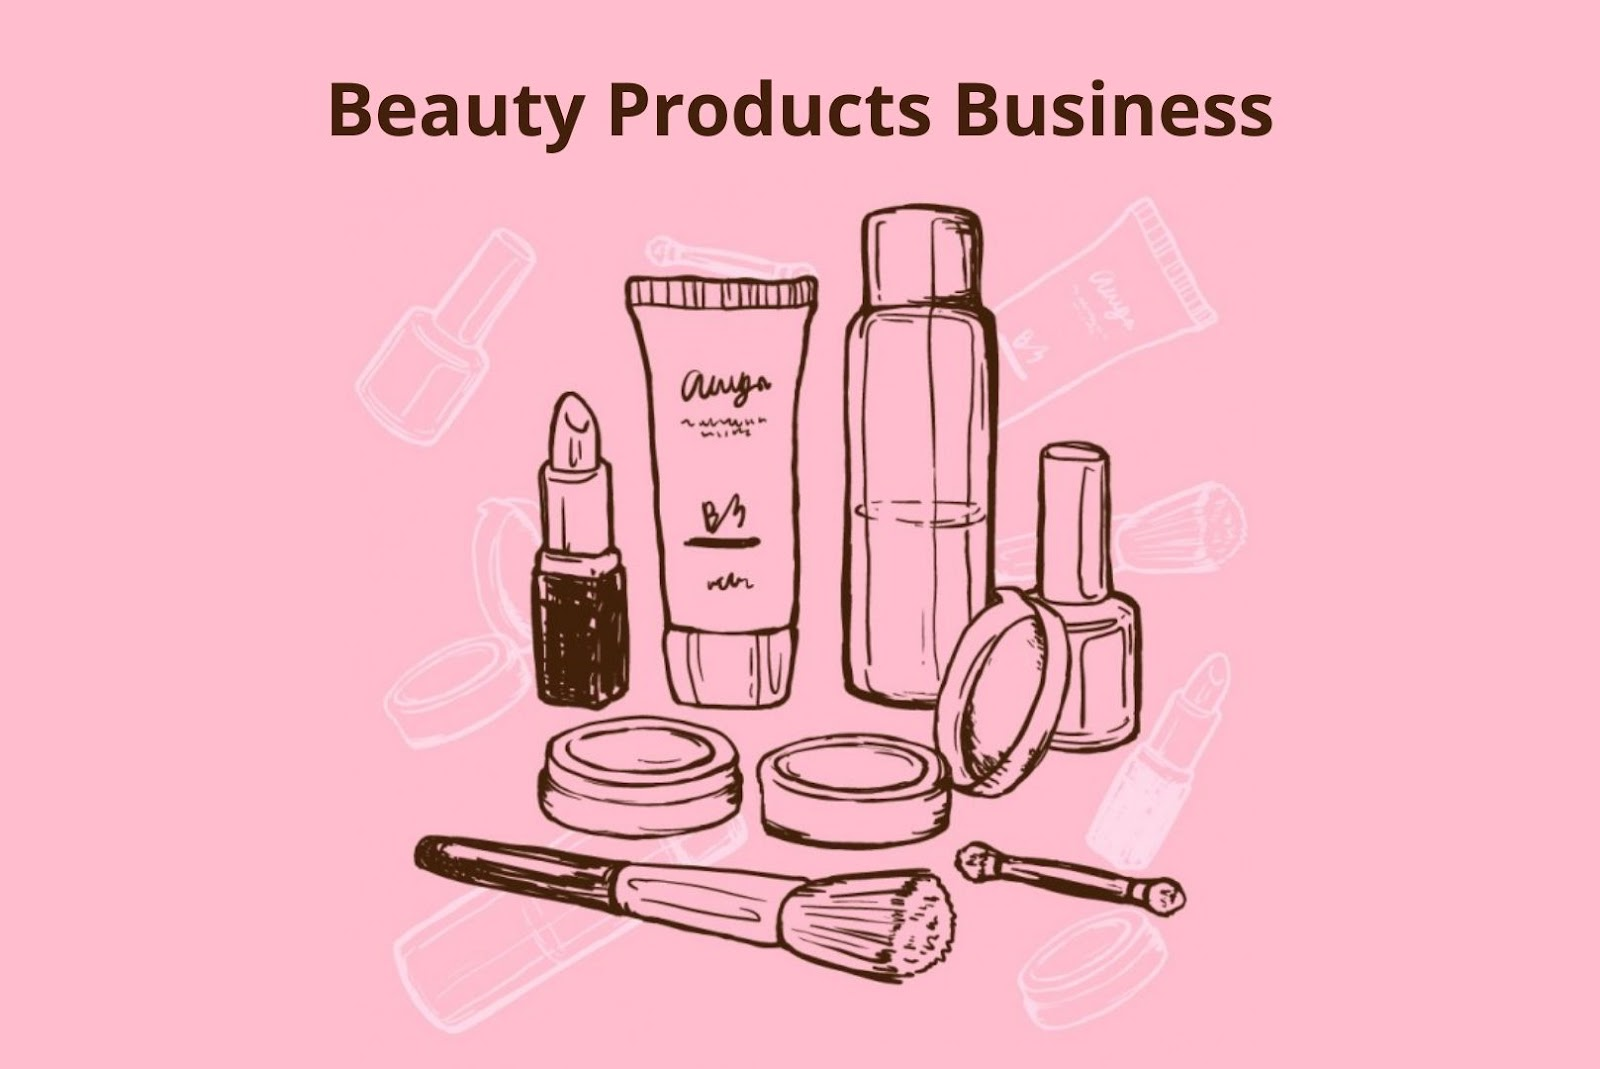 Beauty Products Business